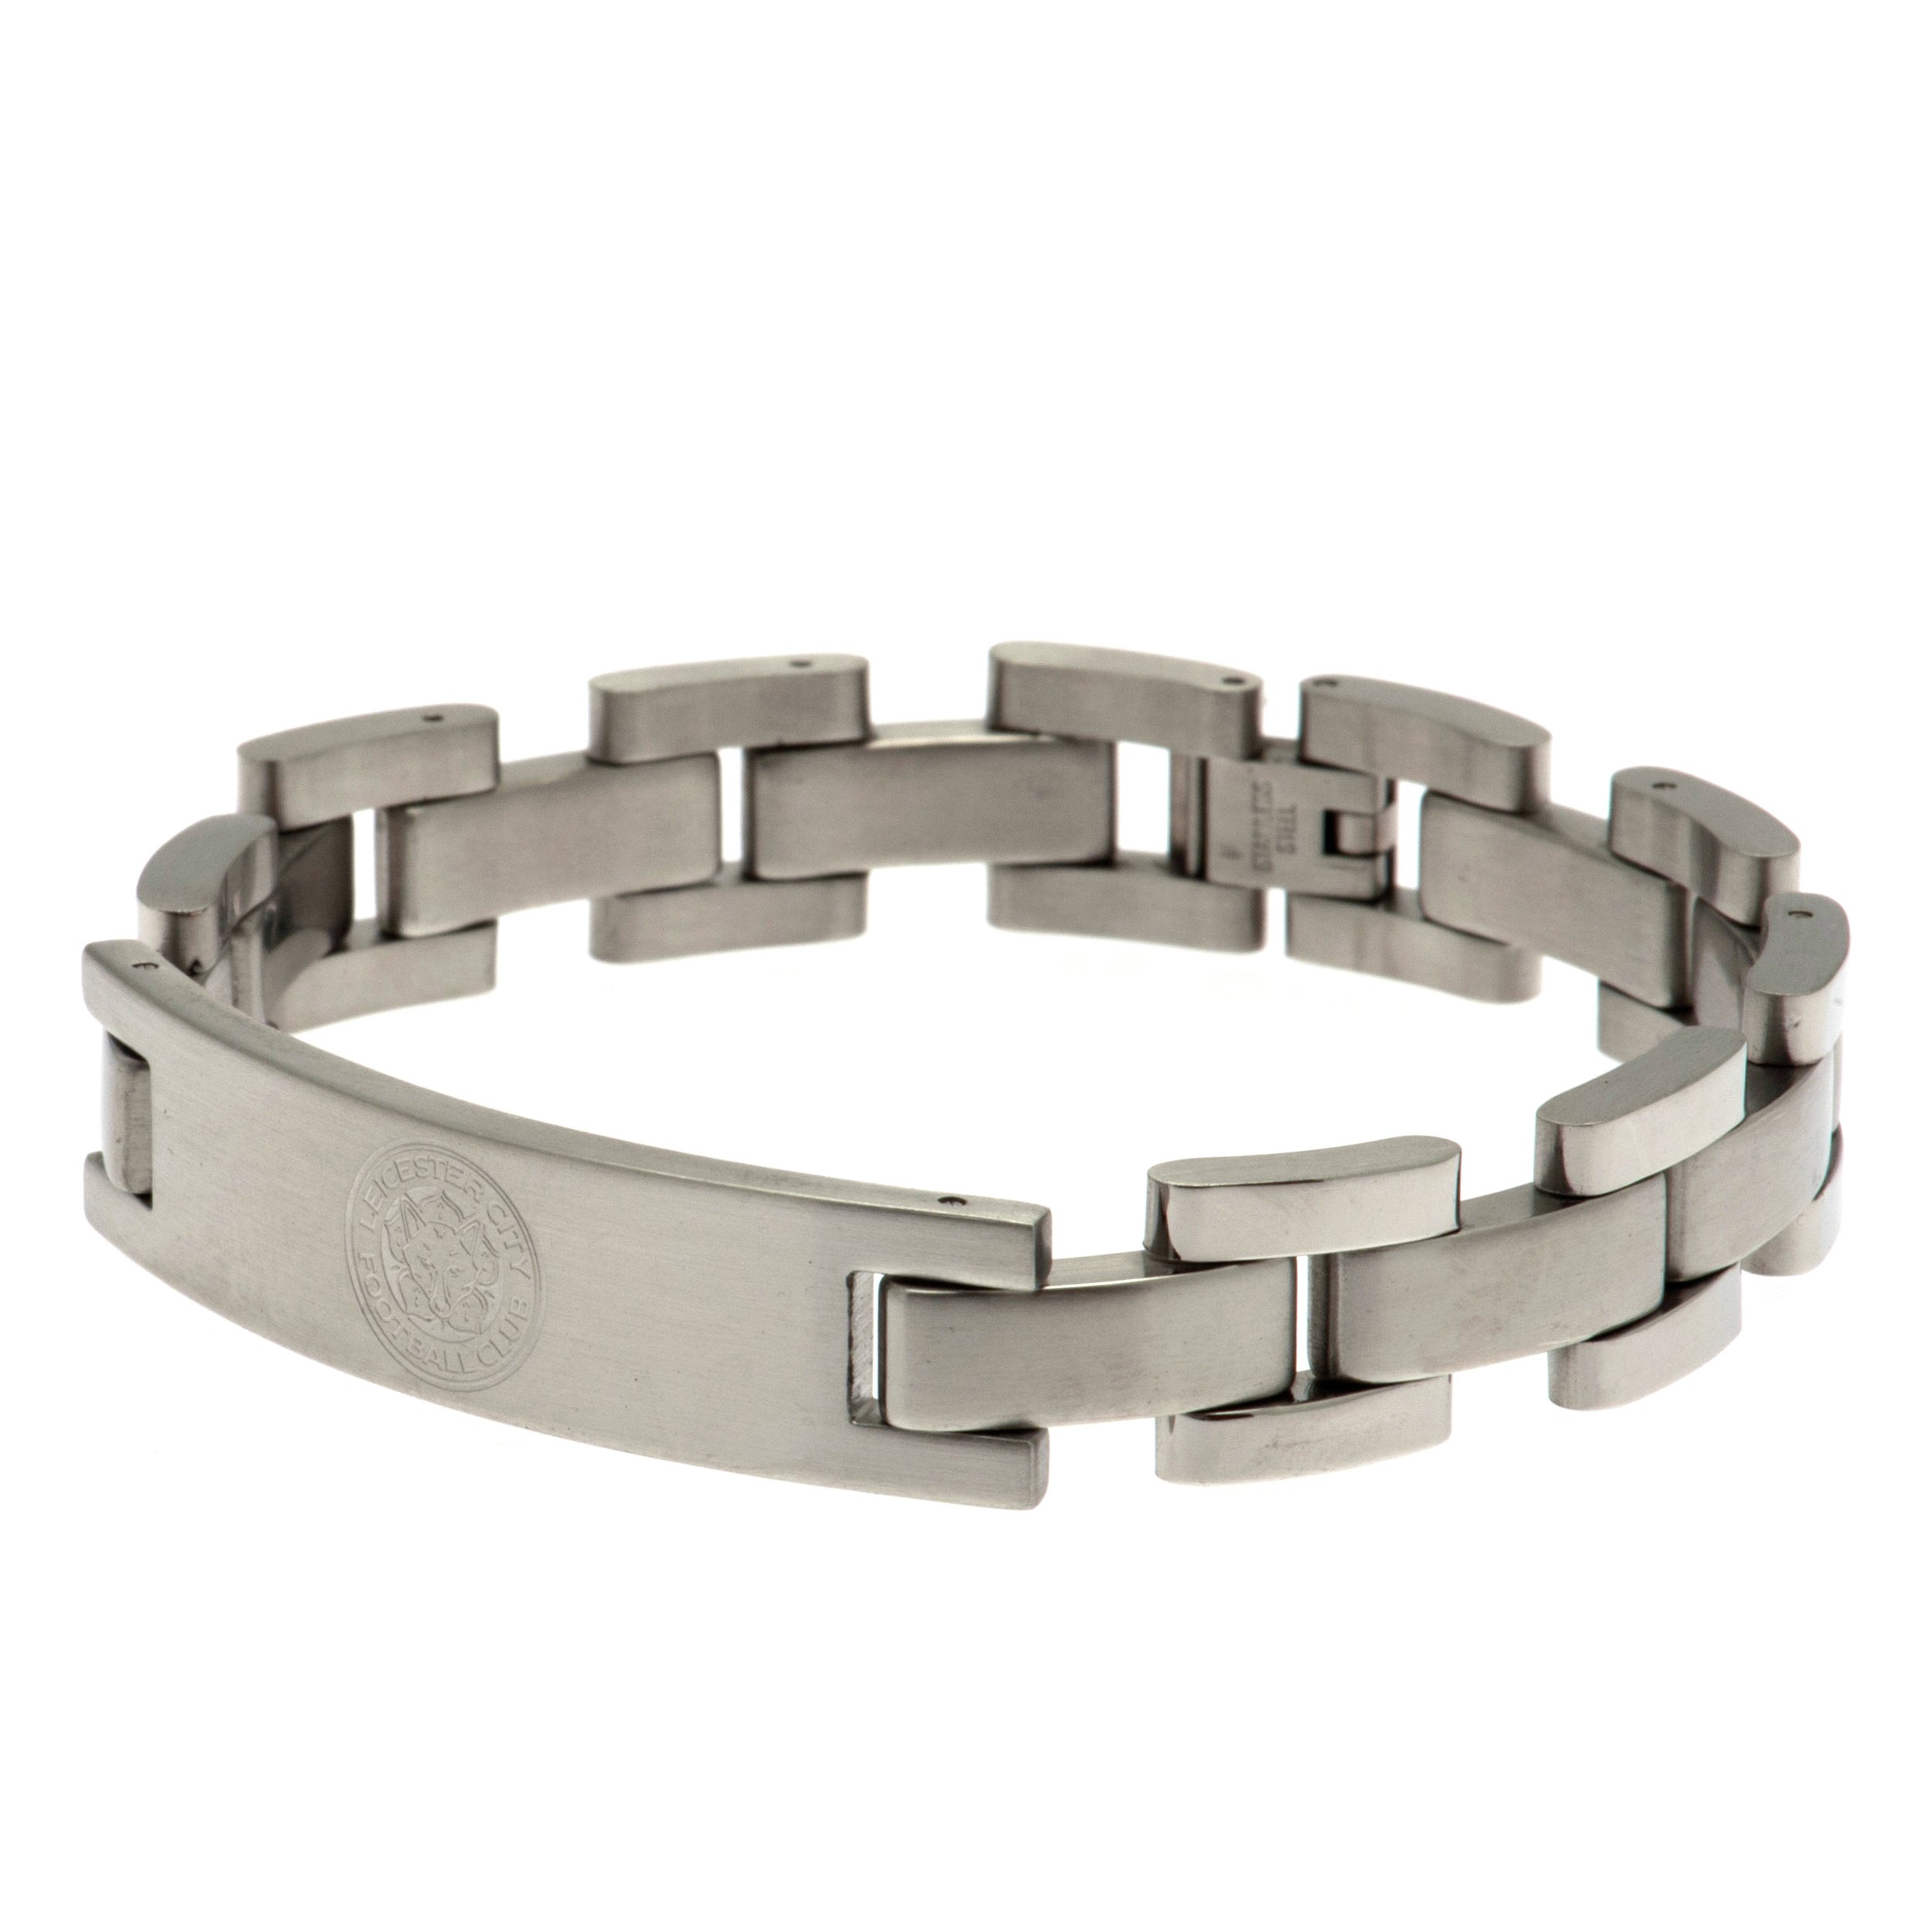 Stainless Steel Leicester City Crest Bracelet